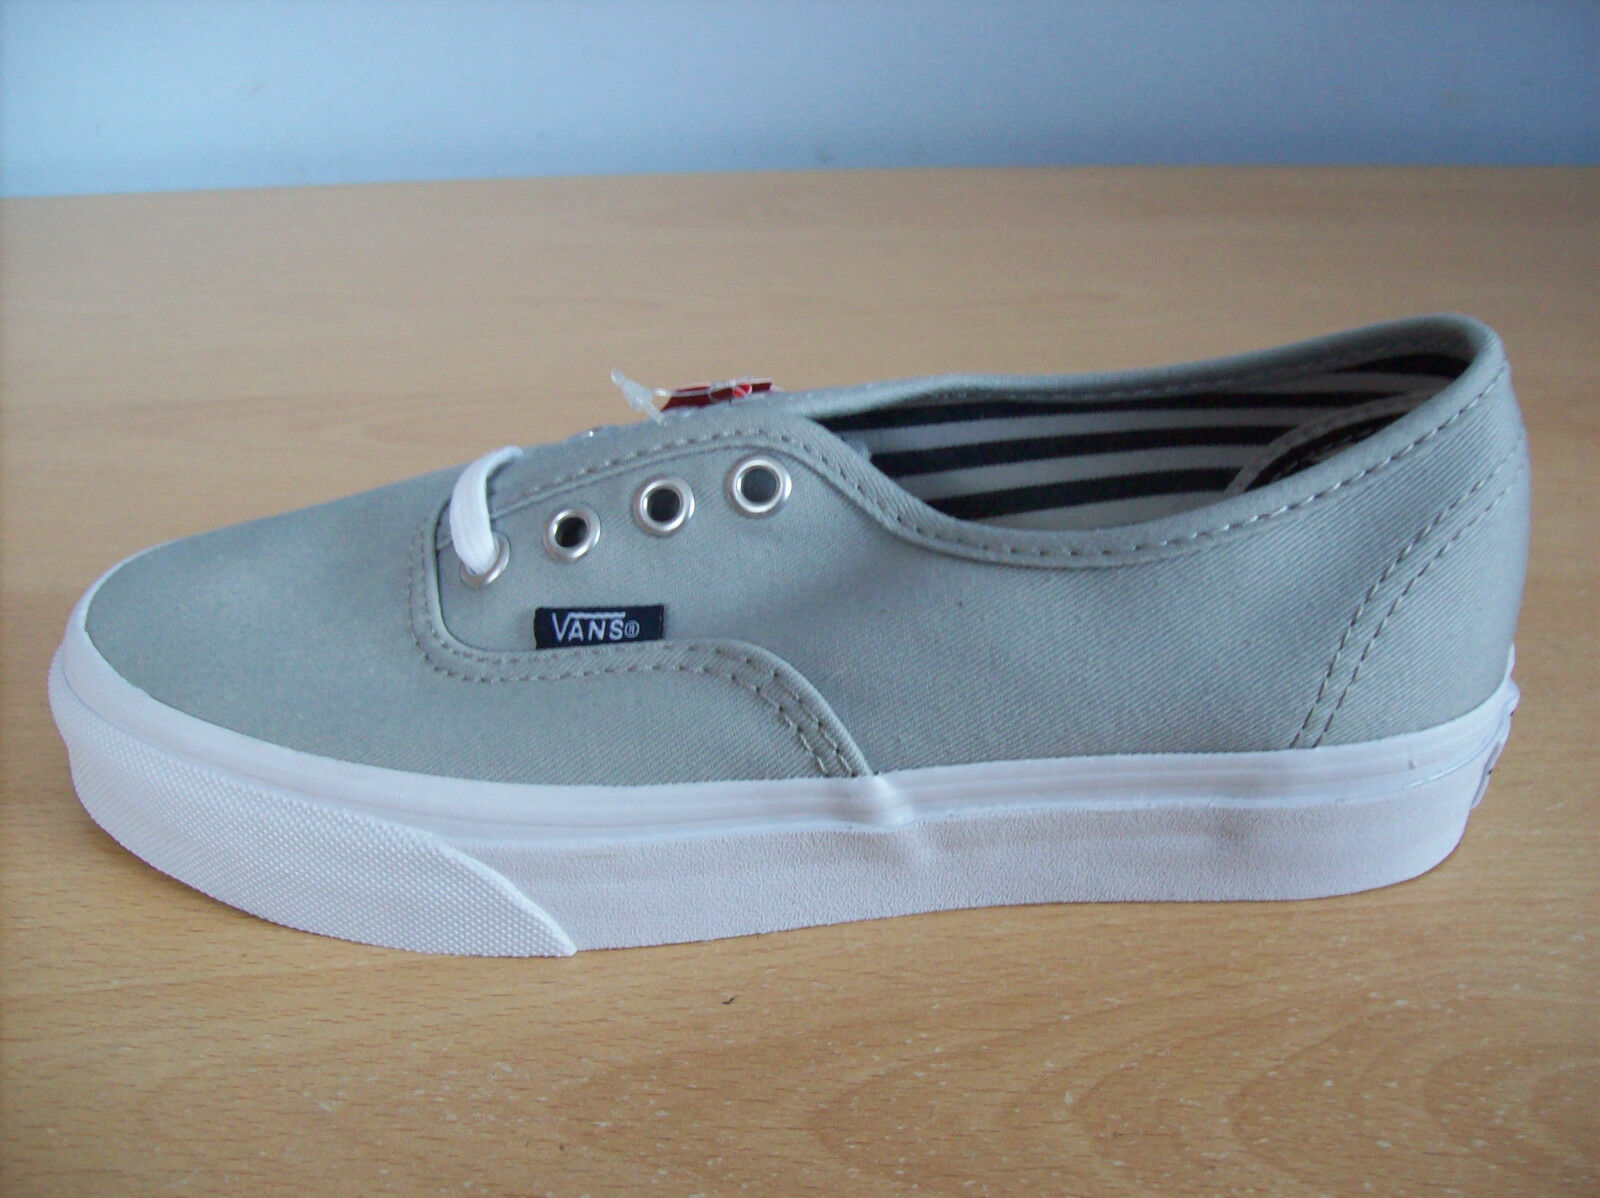 Baskets Vans Vans Baskets Unisexe Authentique Chaussures De Skate Low Top Baskets Gris UK 3.5 neuf + étiquettes 0cc387